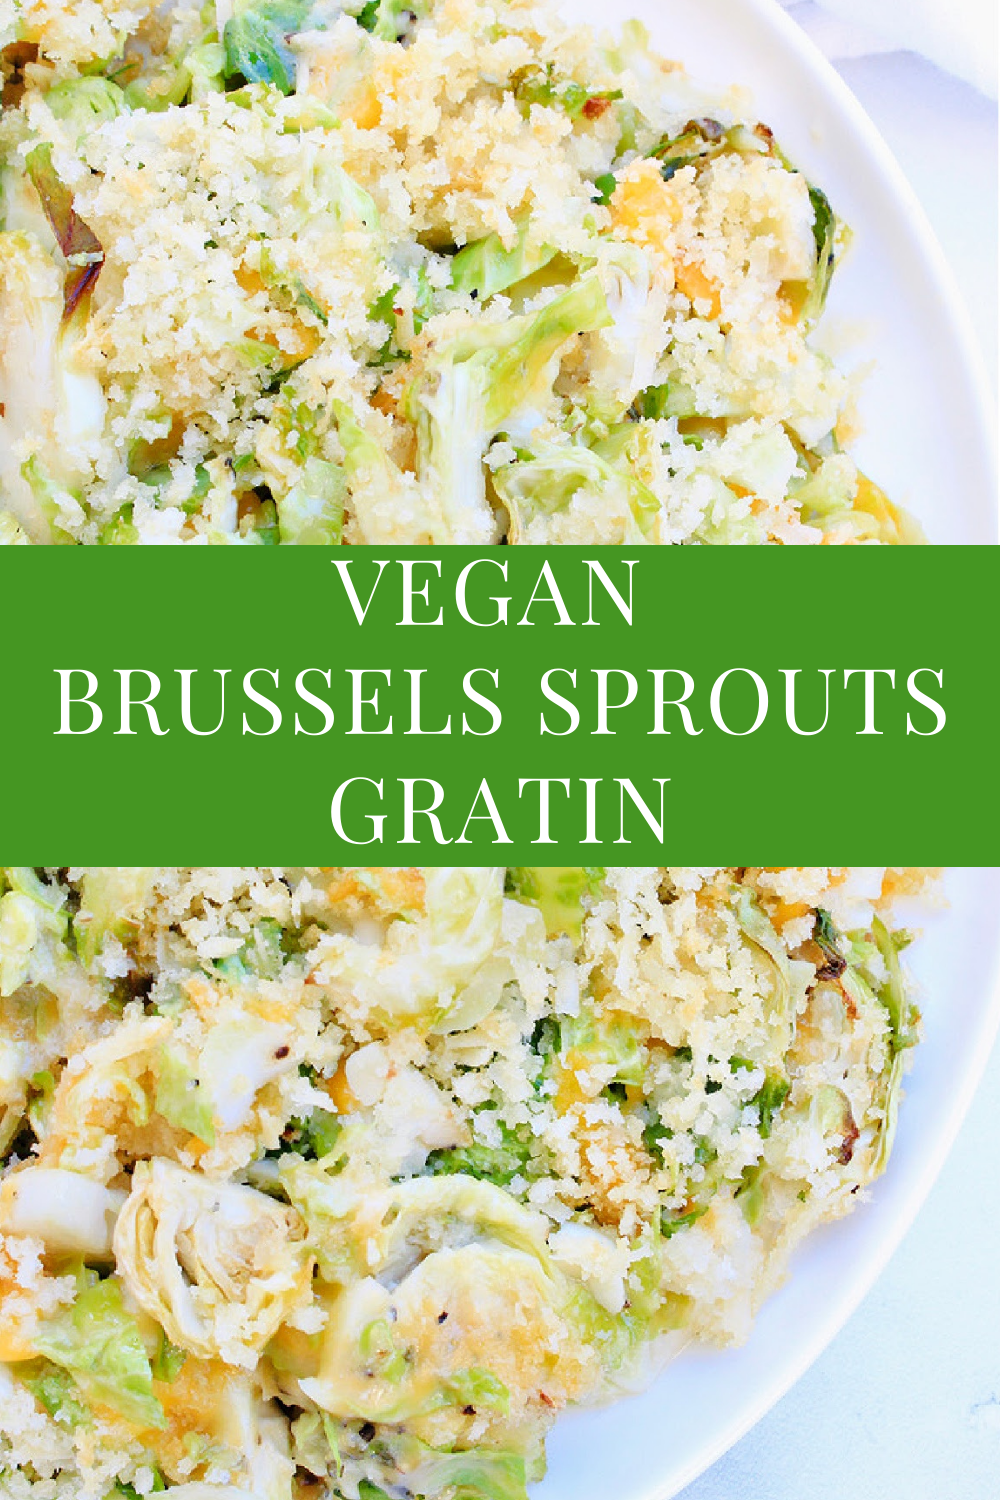 Brussels Sprouts Gratin ~ An easy and elegant, vegan Brussels sprouts casserole side dish made with two kinds of dairy-free cheeses, simple seasonings, and a crispy Panko breadcrumb topping. You'll love this delicious Thanksgiving side dish recipe! via @thiswifecooks